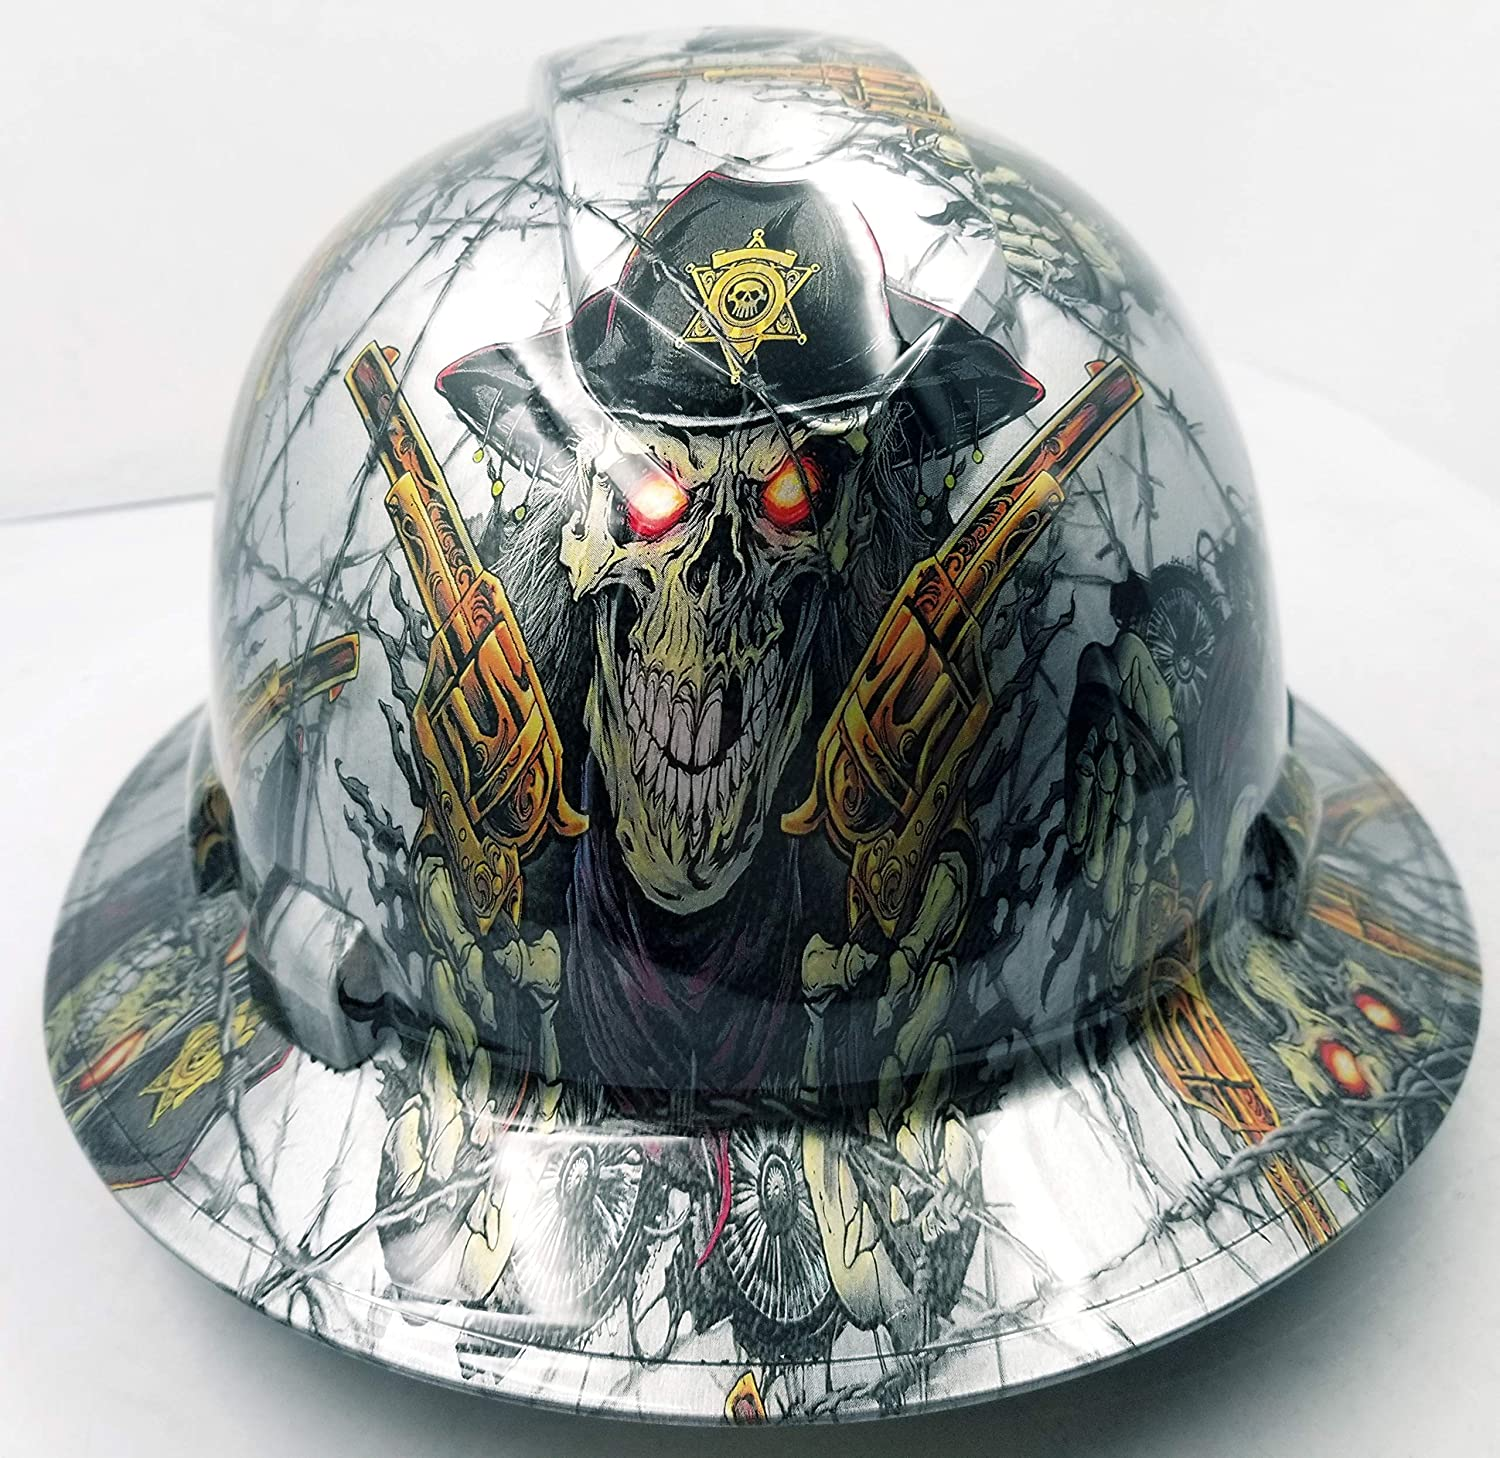 Wet Works Imaging Customized Pyramex Full Brim Dirty Dirty Harry Hard HAT  with Ratcheting Suspension Custom LIDS Crazy Sick Construction PPE